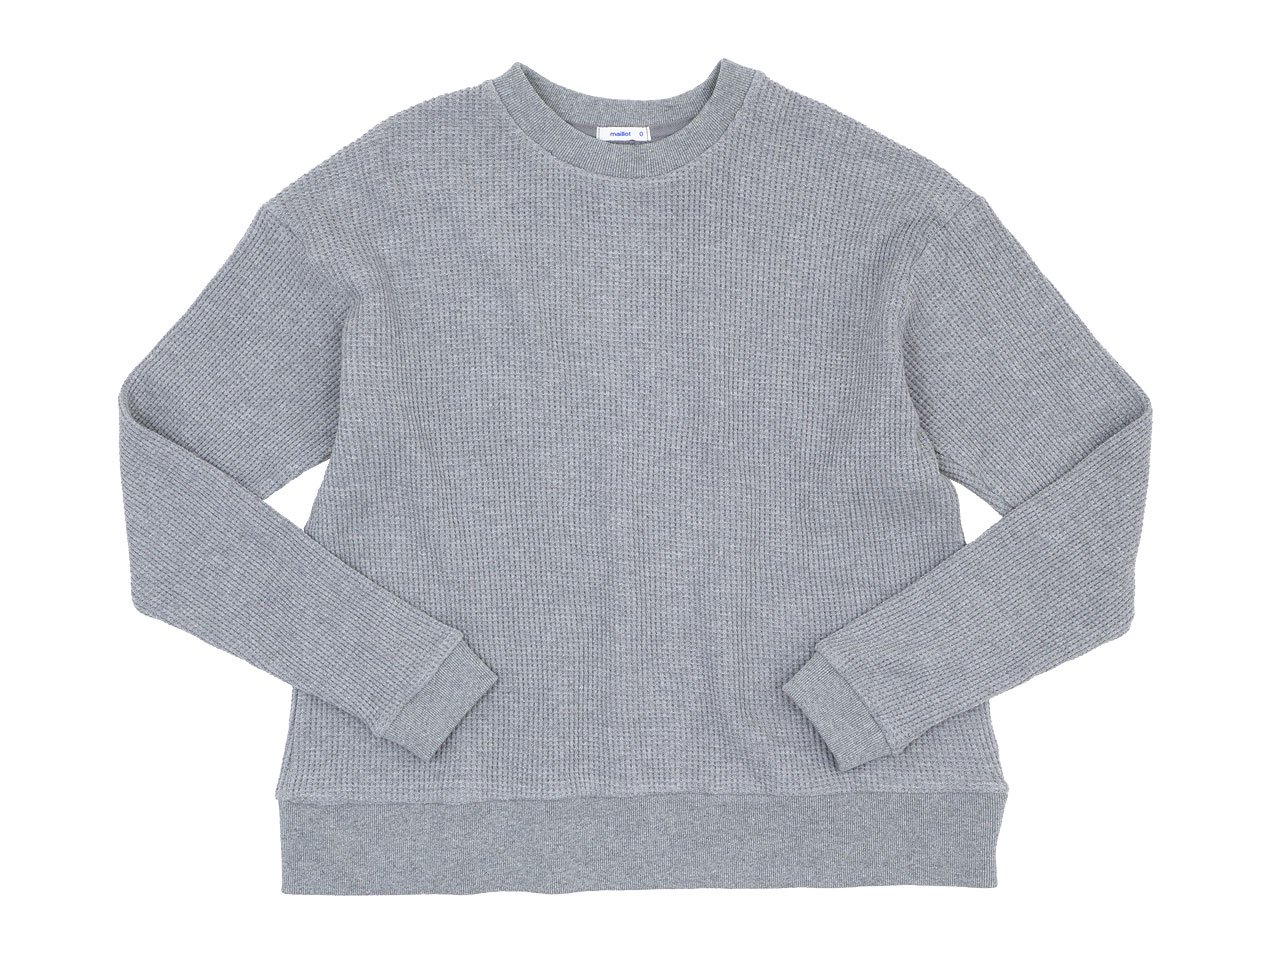 maillot US waffle trainer TOP GRAY